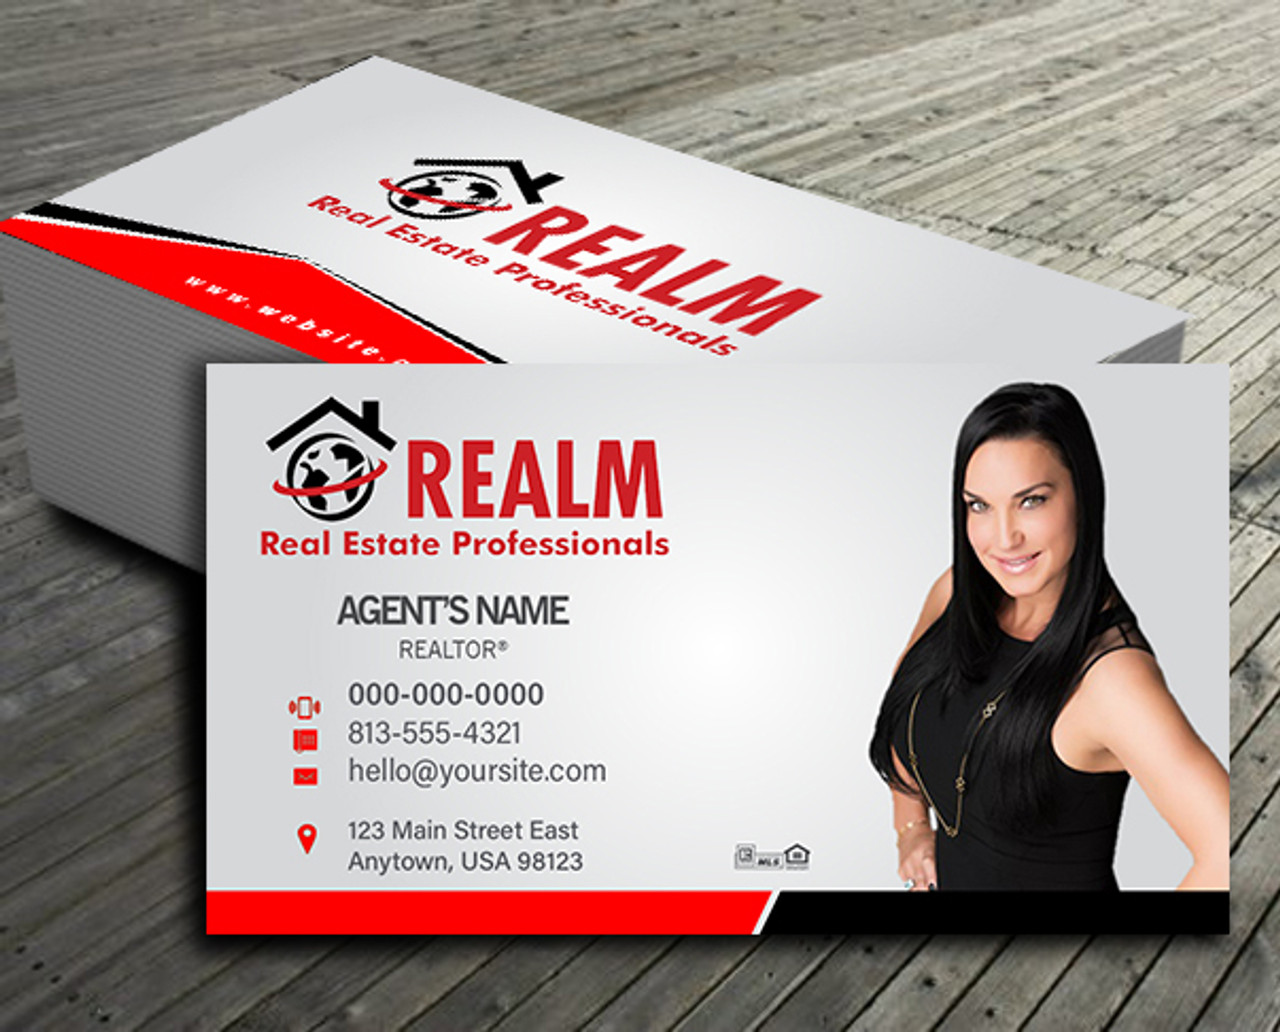 Realm Business Cards